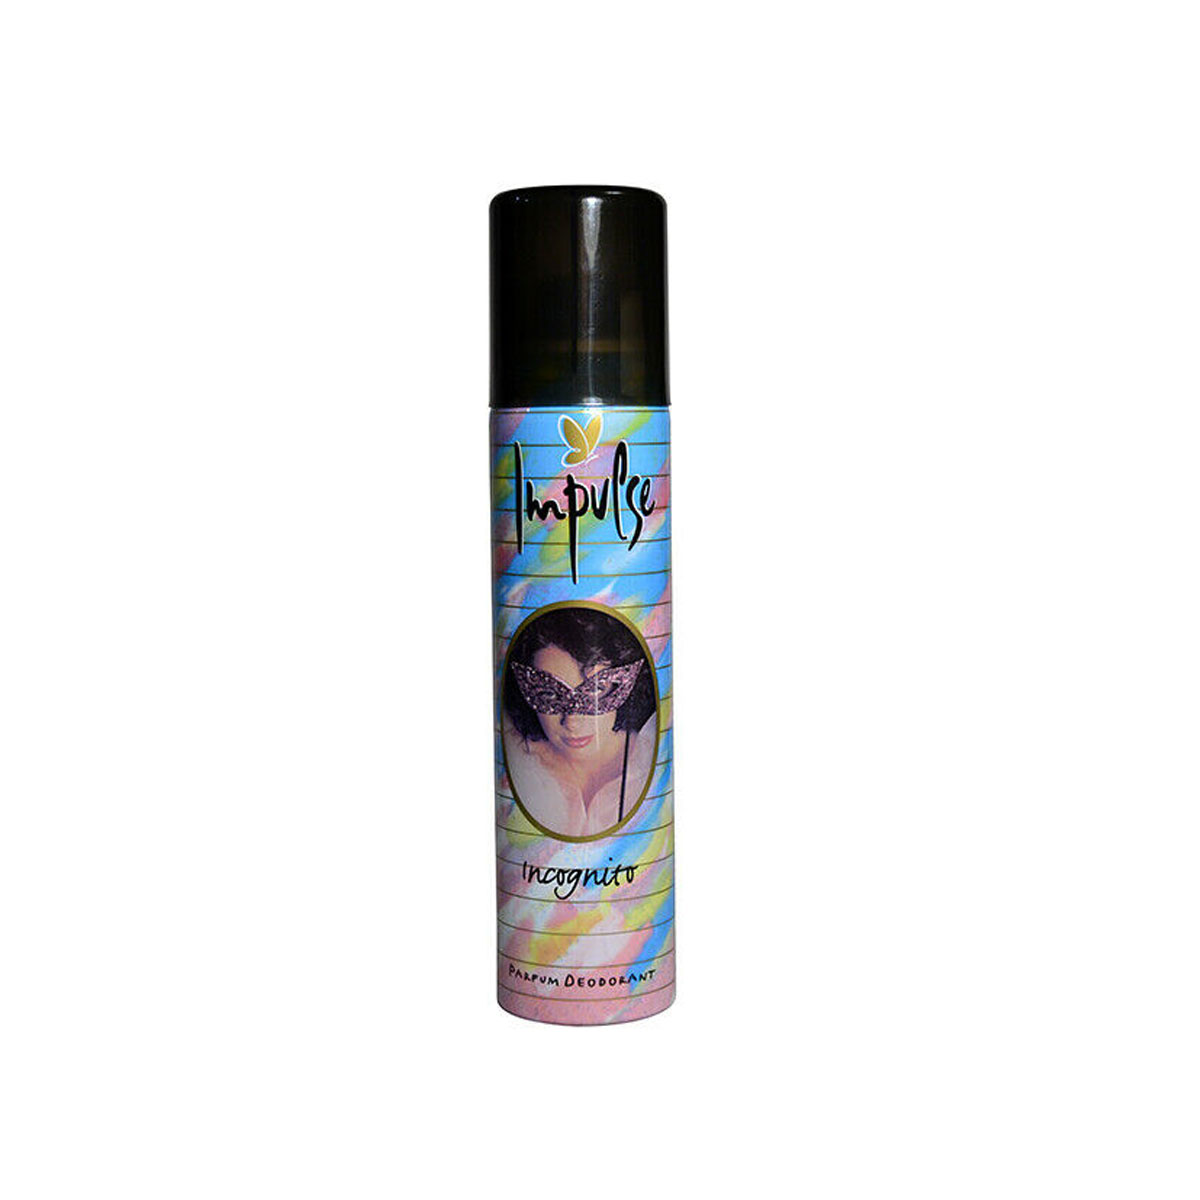 IMPULSE  INCOGNITO deospray 100ml -